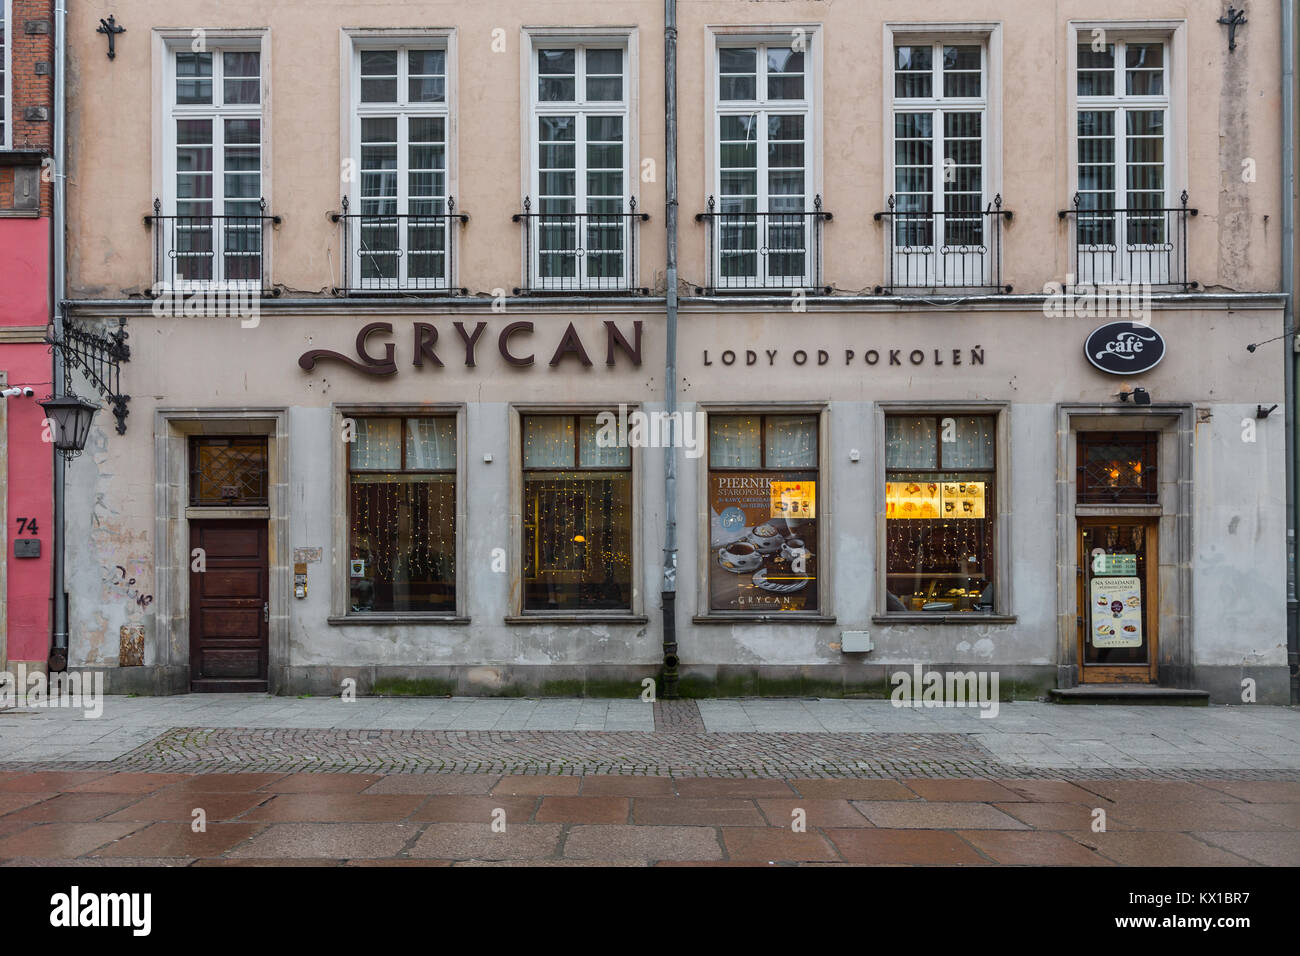 Grycan coffee shop in Gdansk, Poland - Stock Image